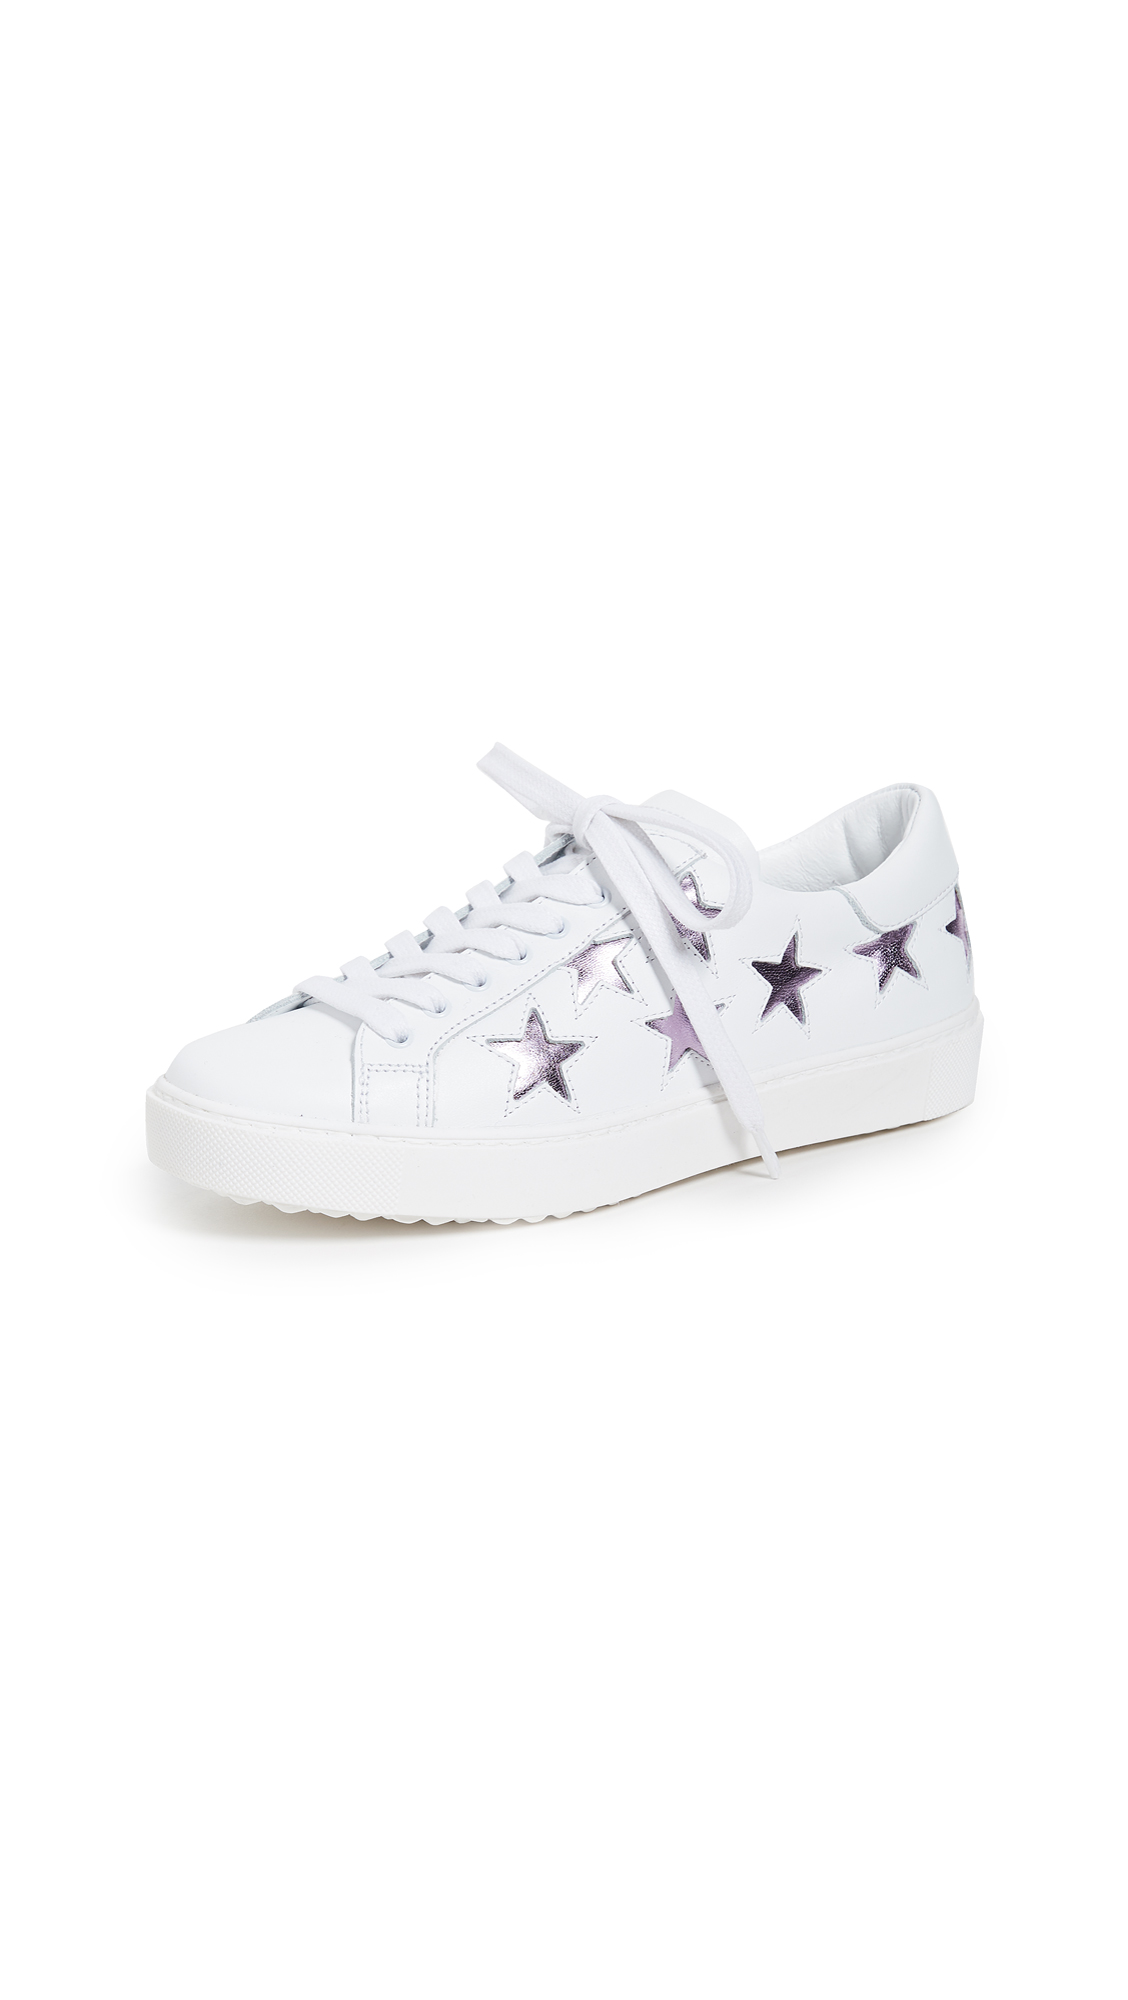 ONE by Stella Star Sneakers - White/Pink Metallic